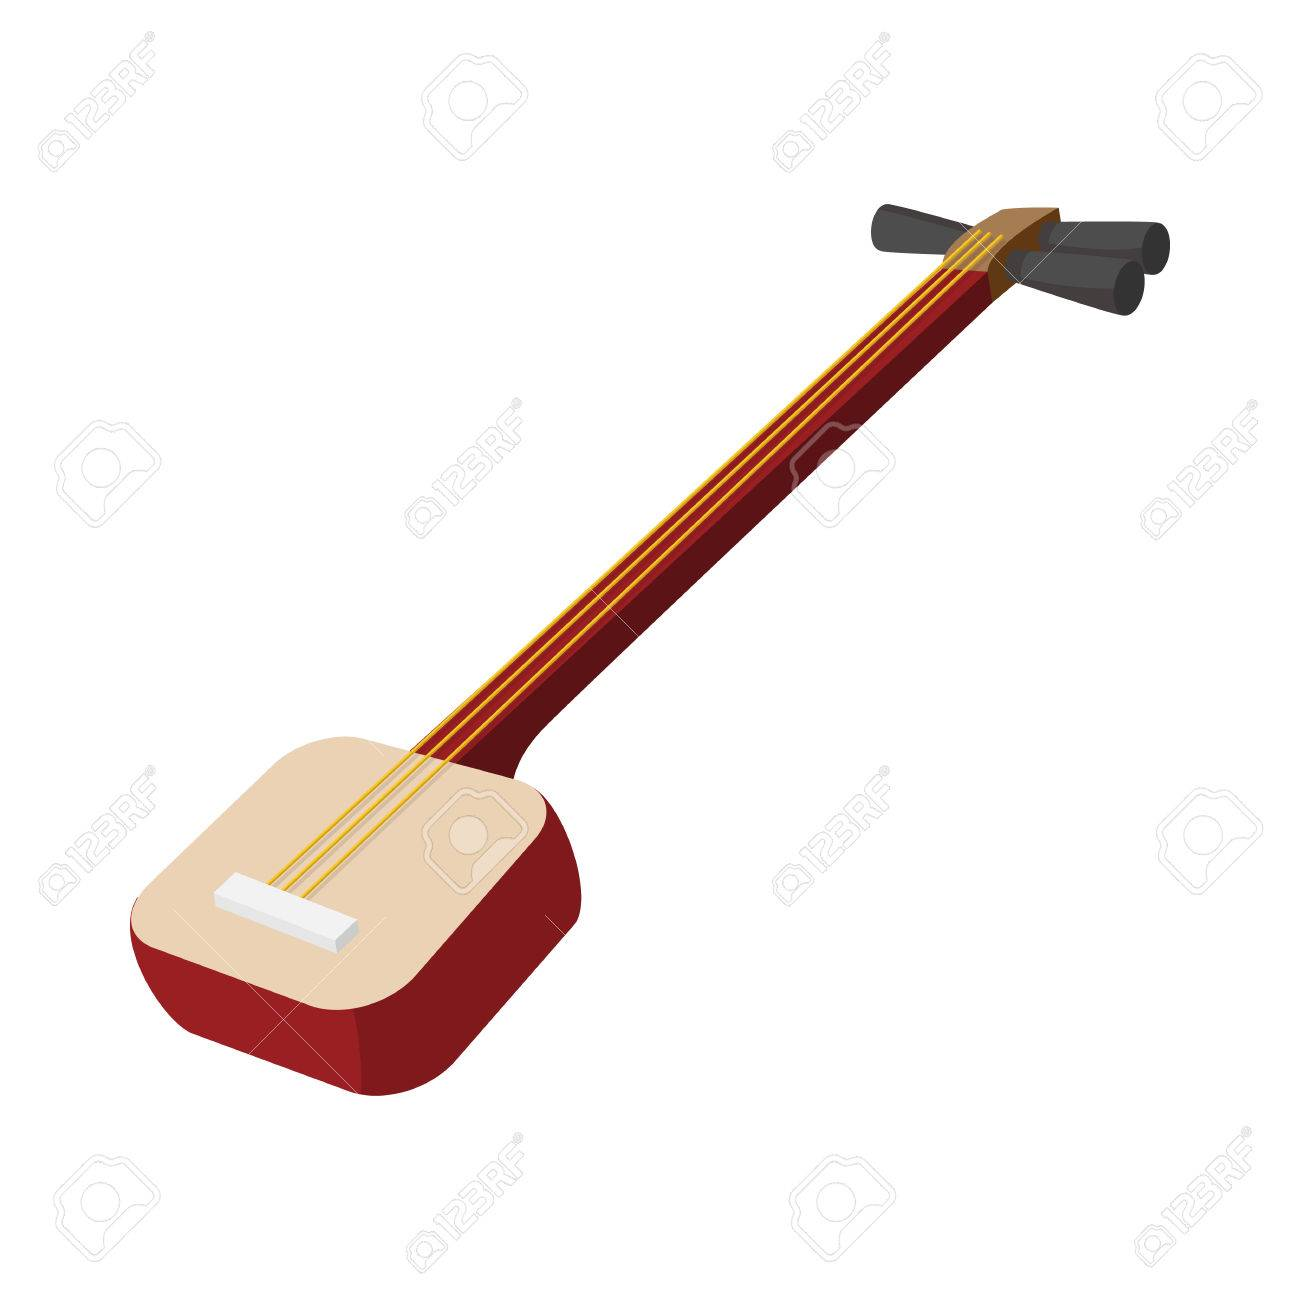 Shamisen Icon On White Background In Cartoon Style Japanese Royalty Free Cliparts Vectors And Stock Illustration Image 53346508